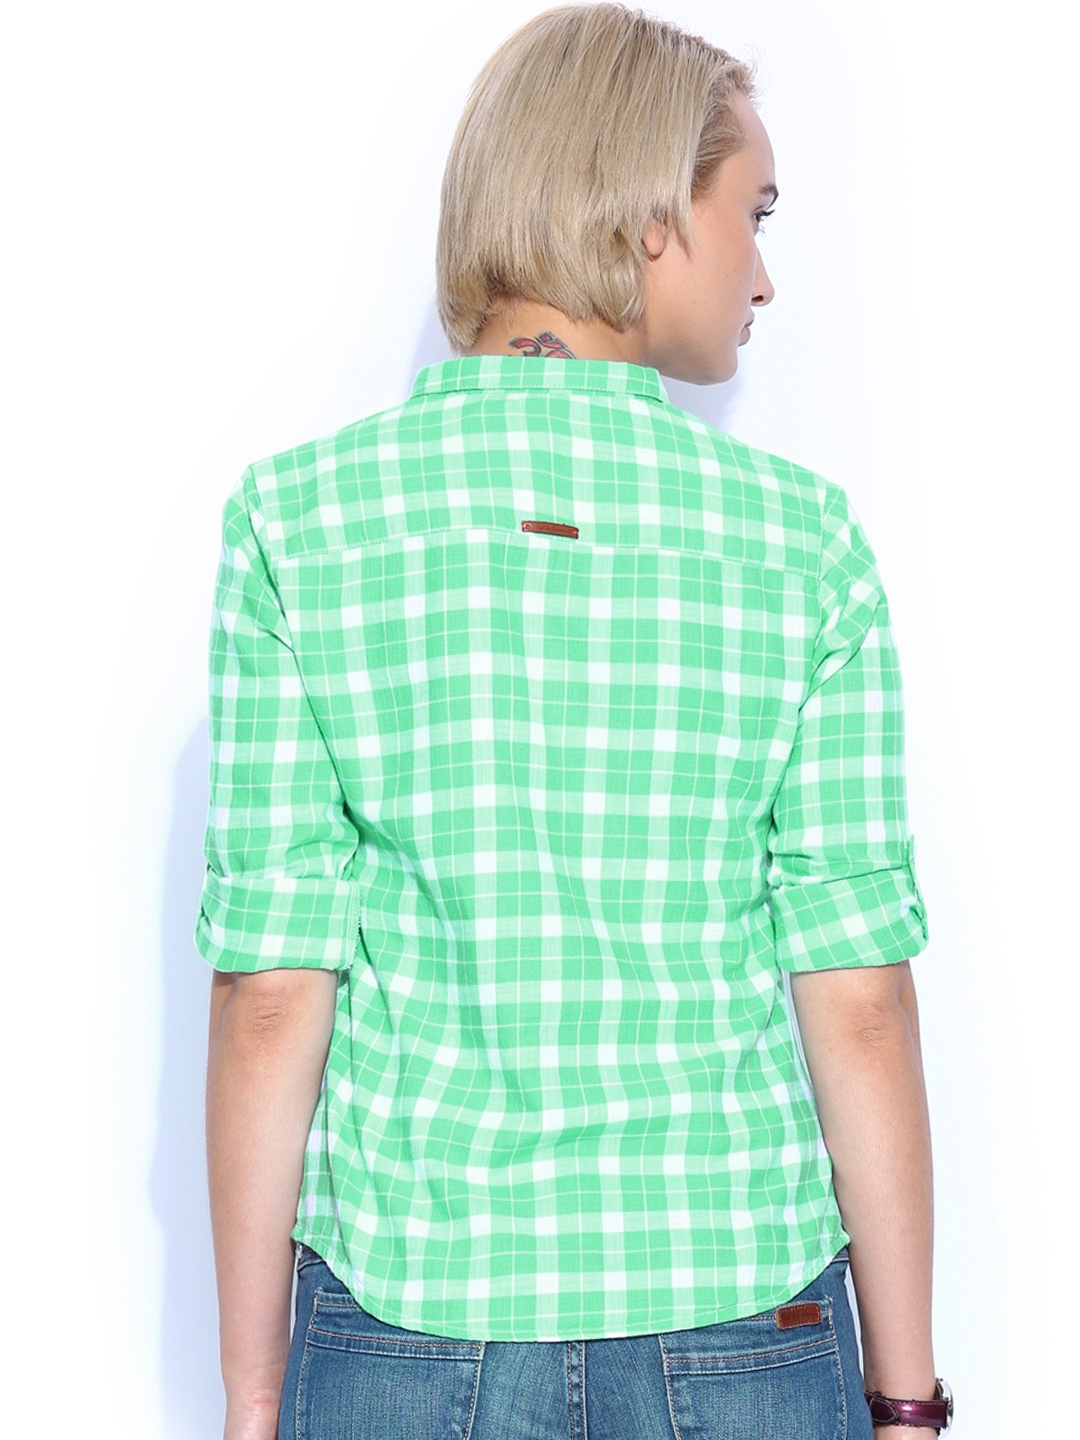 Home clothing women clothing shirts mast harbour shirts for Womens green checked shirt